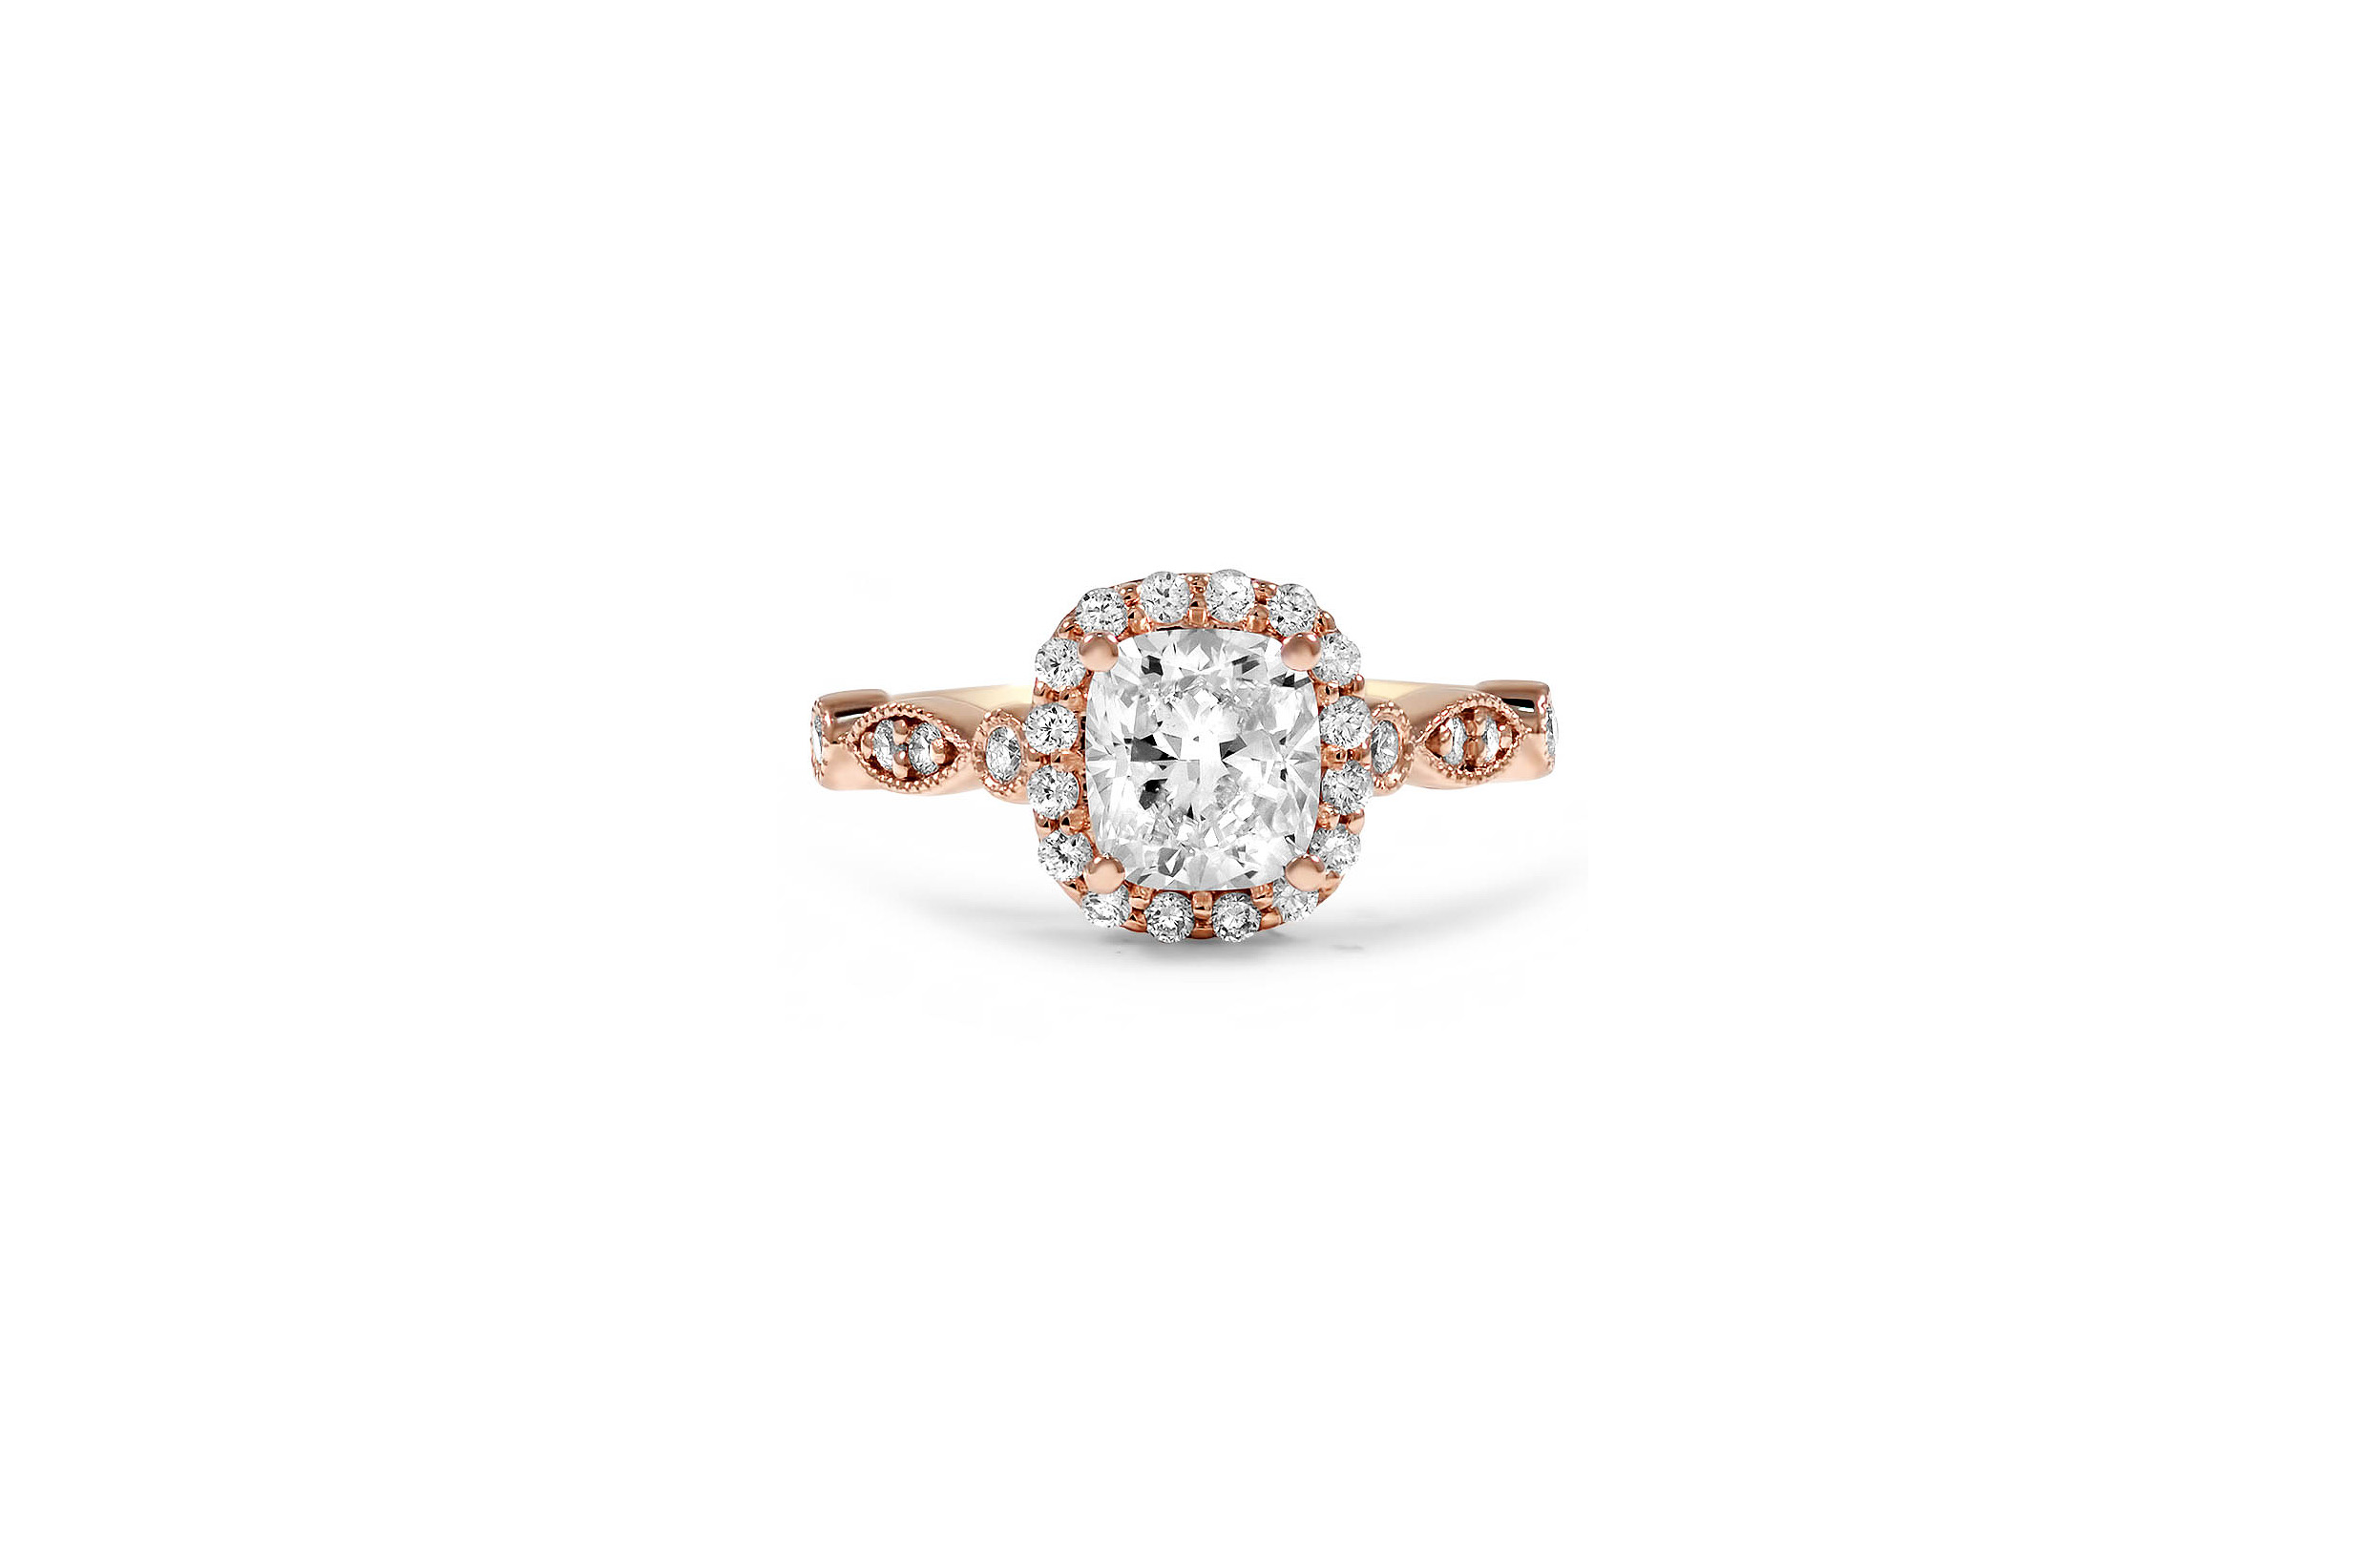 brilliant earth cushion cut diamond engagement ring rose gold tiara inspired